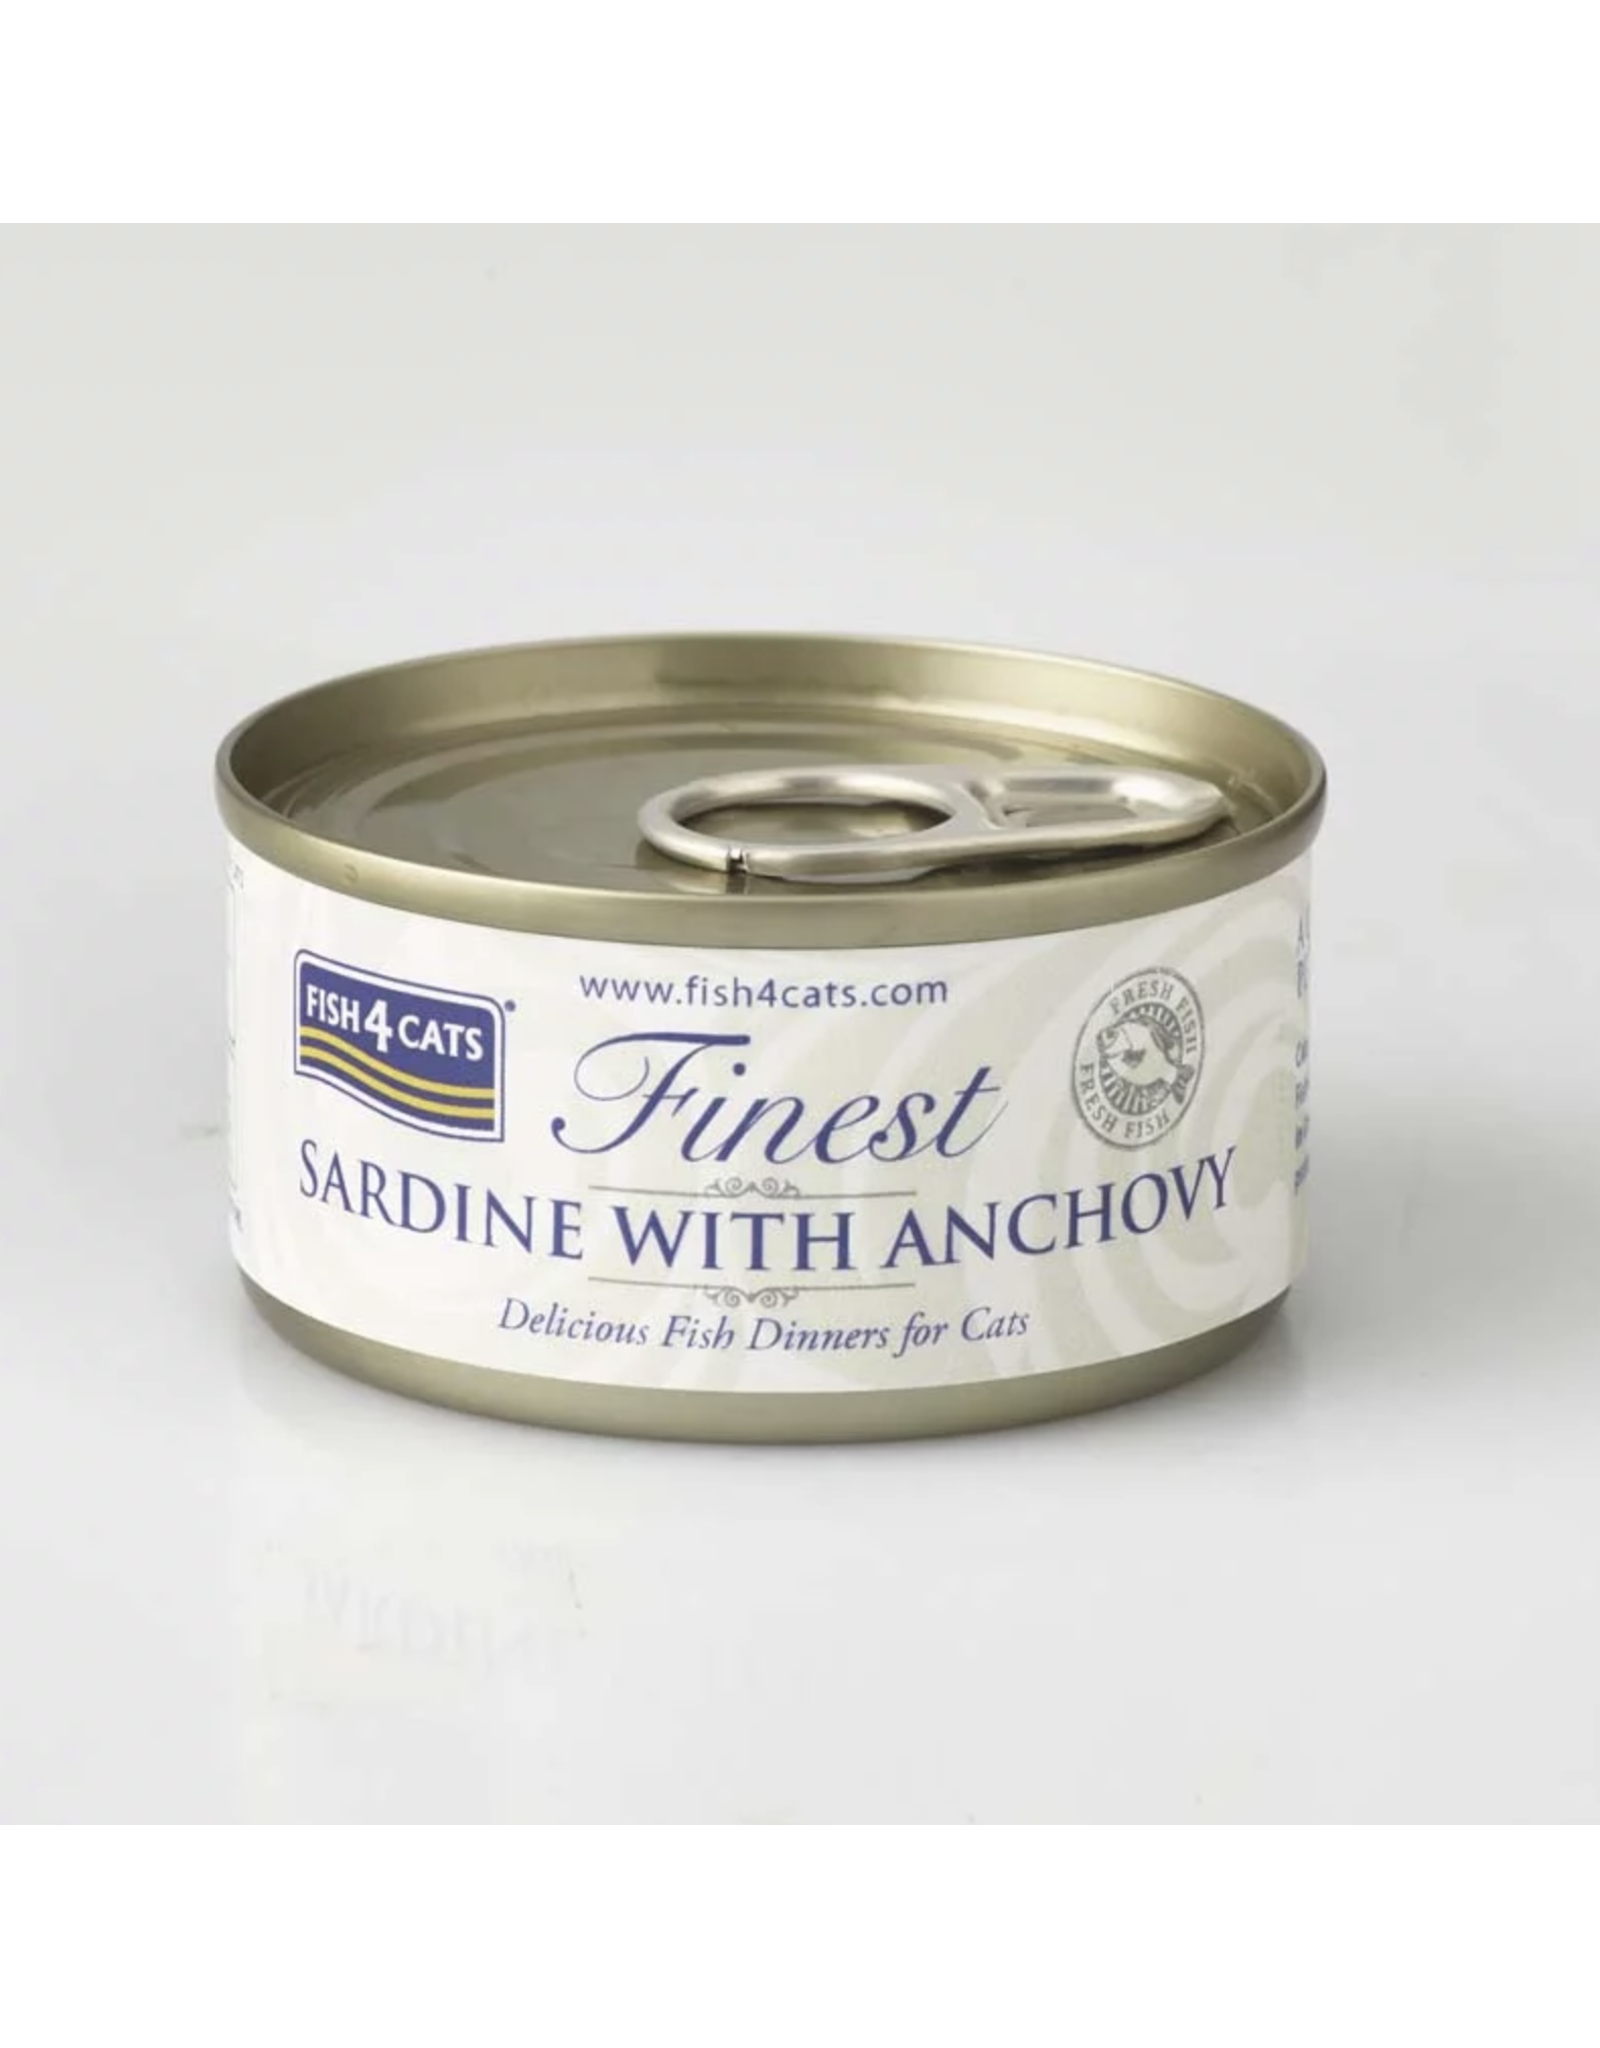 Fish4Cats Finest Sardine with Anchovy Wet Cat Food, 70g